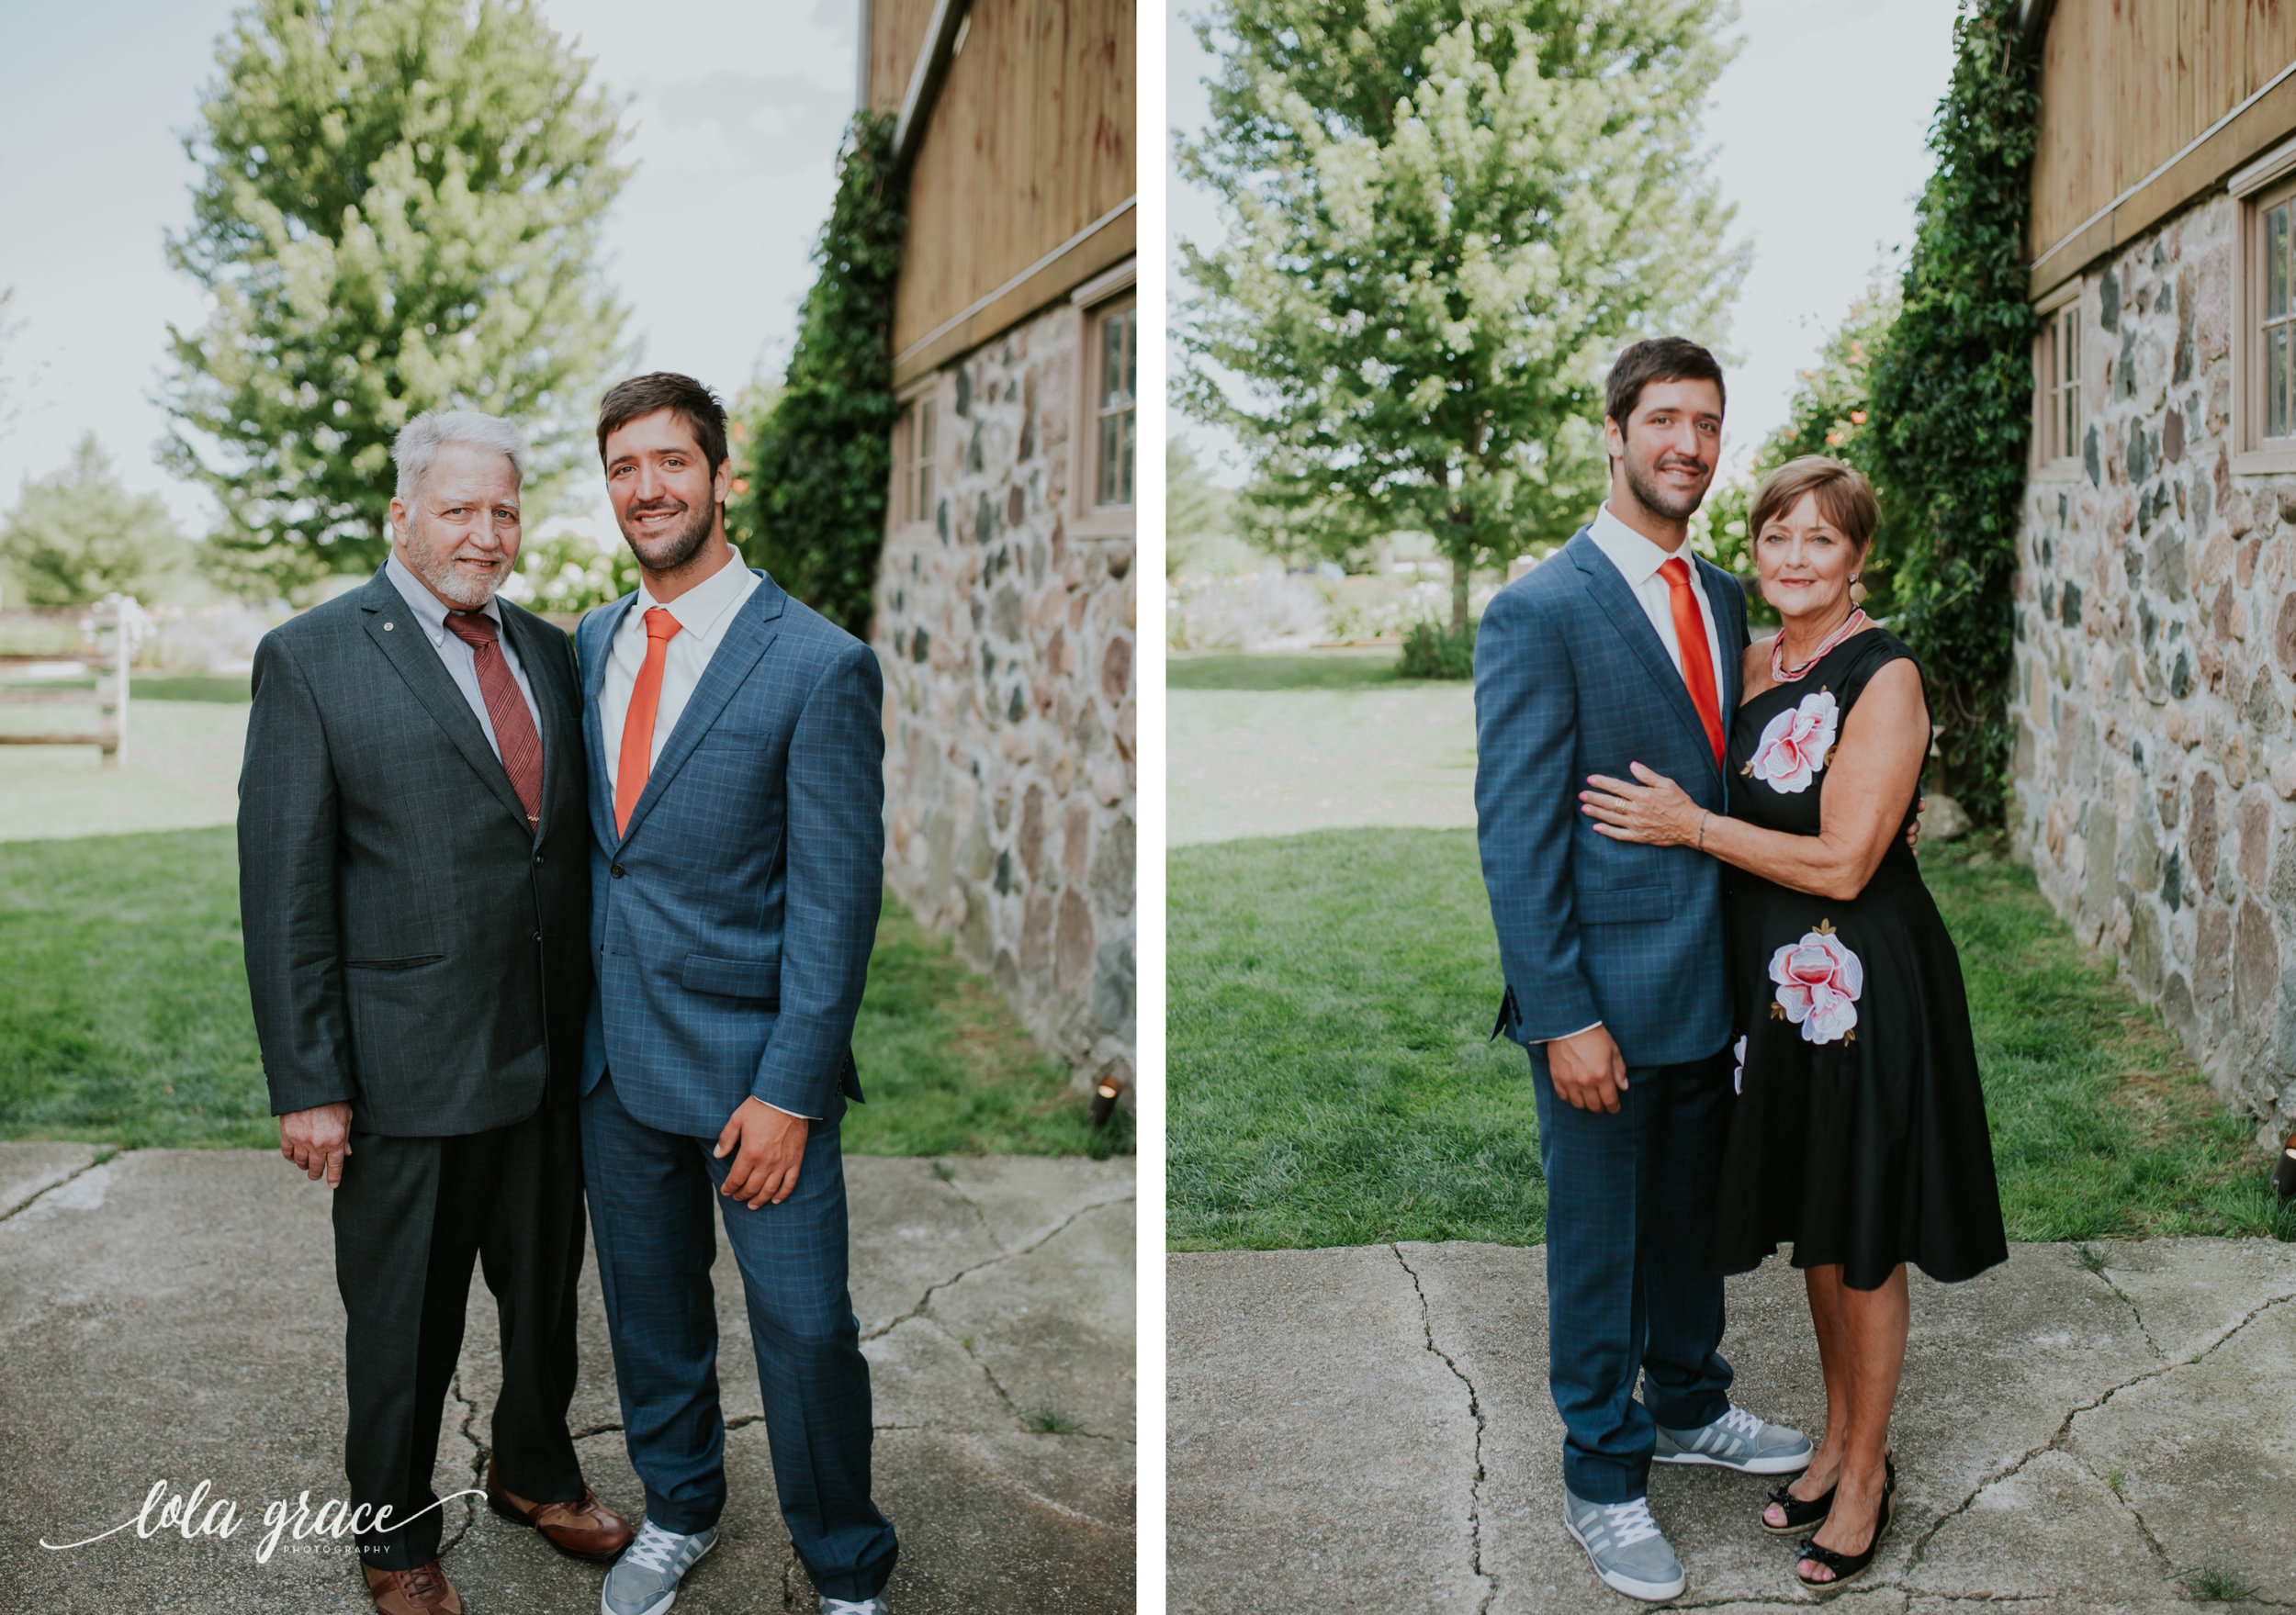 summer-wedding-at-misty-farms-ann-arbor-41.jpg